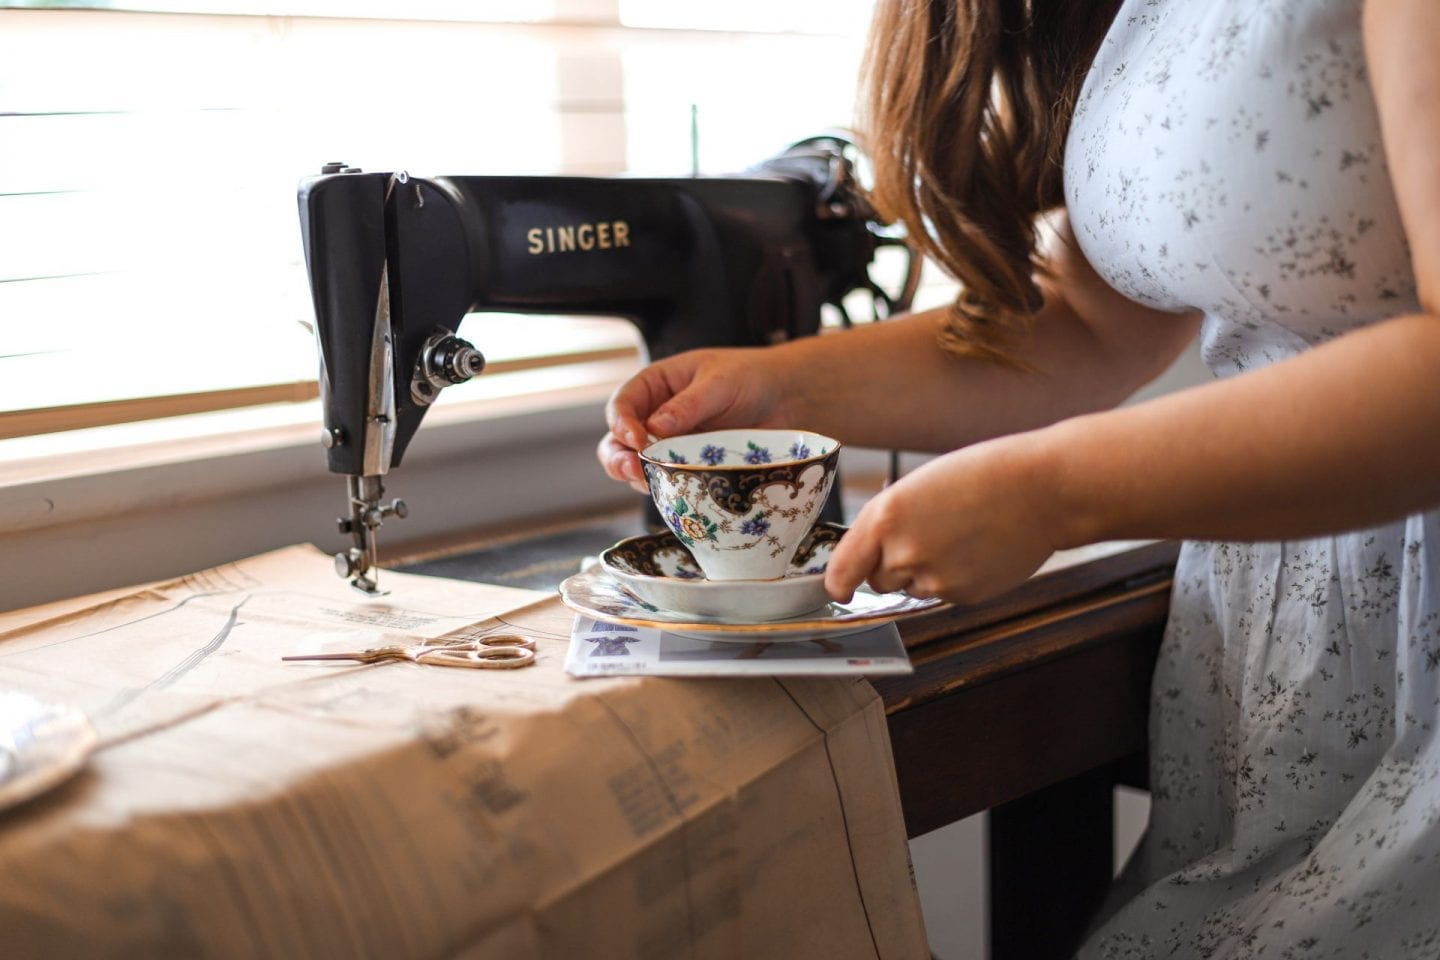 Tips for shopping for second hand sewing machines